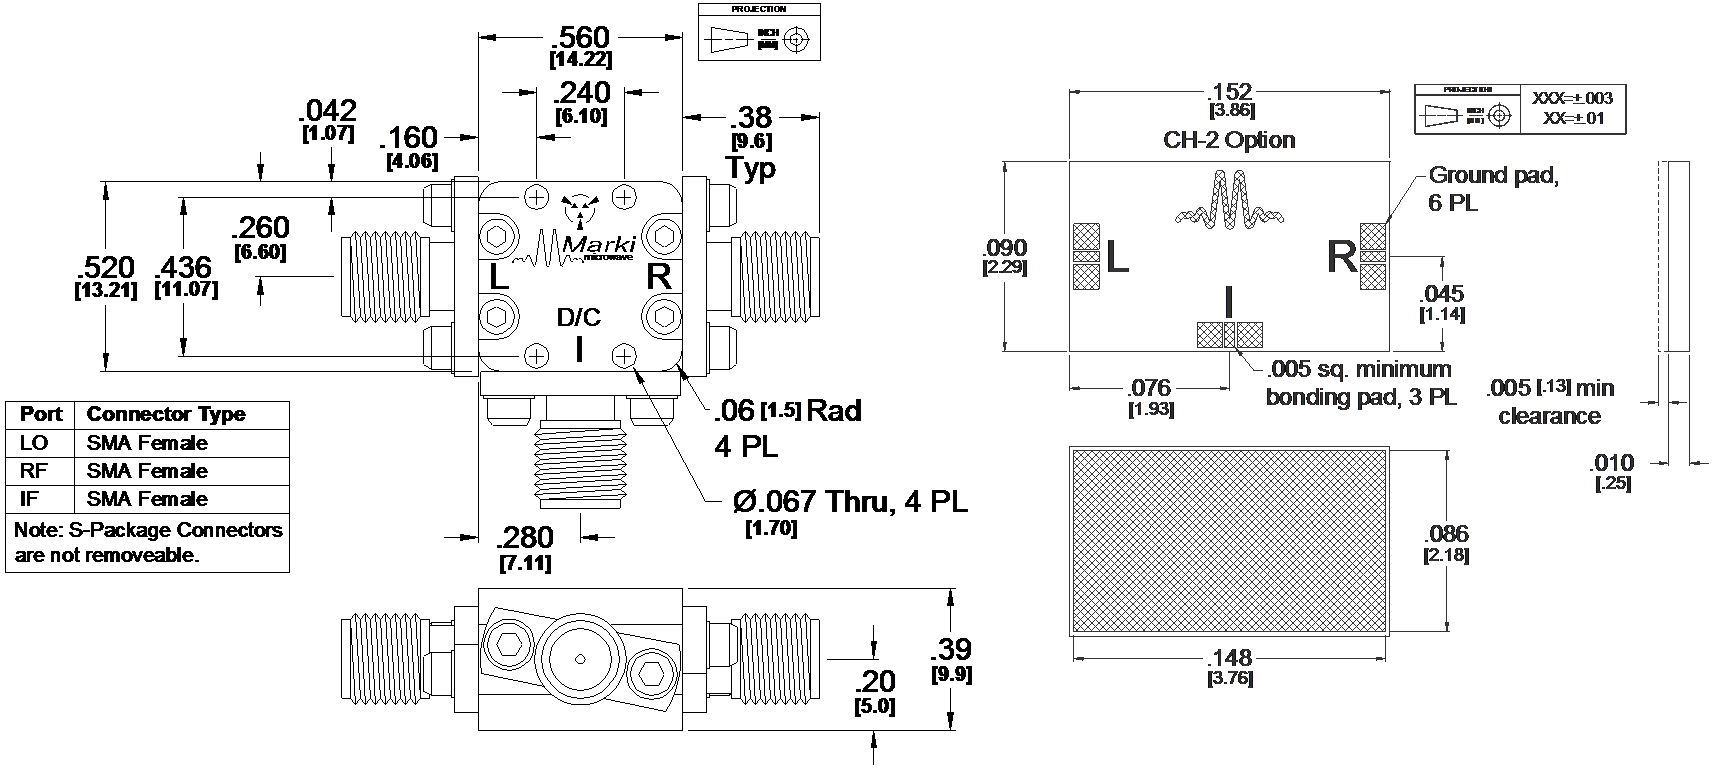 ML1-0732 Mixer Package Diagram